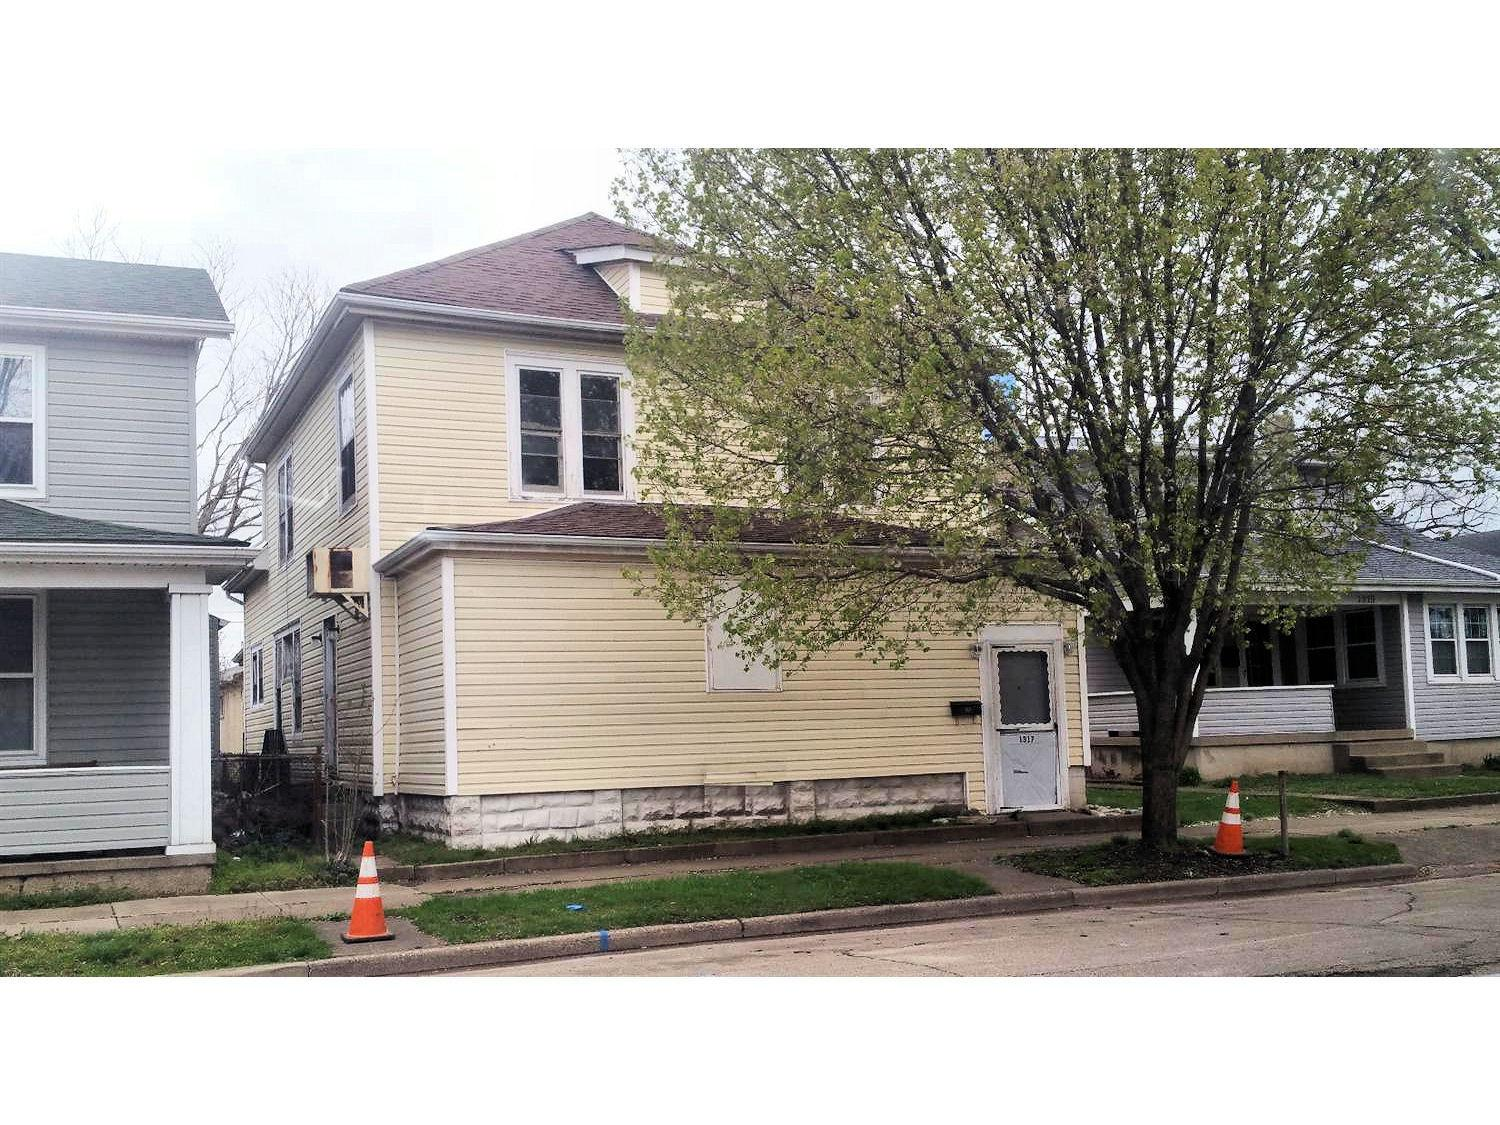 1317 First Ave Middletown South Oh 45044 Listing Details